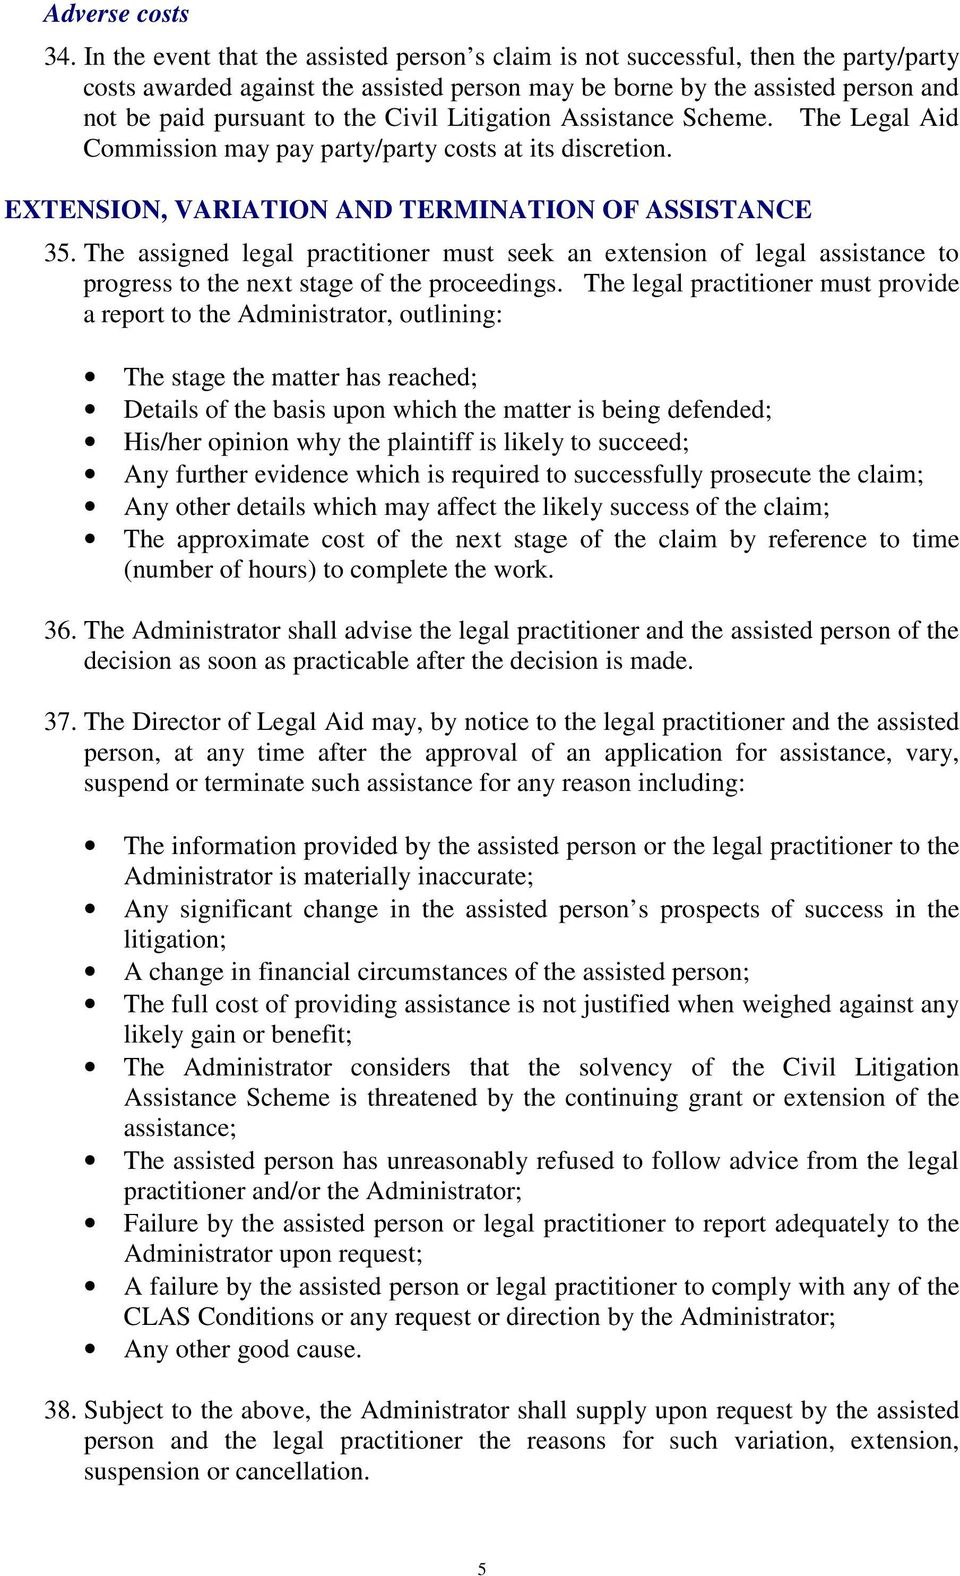 Civil Litigation Assistance Scheme. The Legal Aid Commission may pay party/party costs at its discretion. EXTENSION, VARIATION AND TERMINATION OF ASSISTANCE 35.